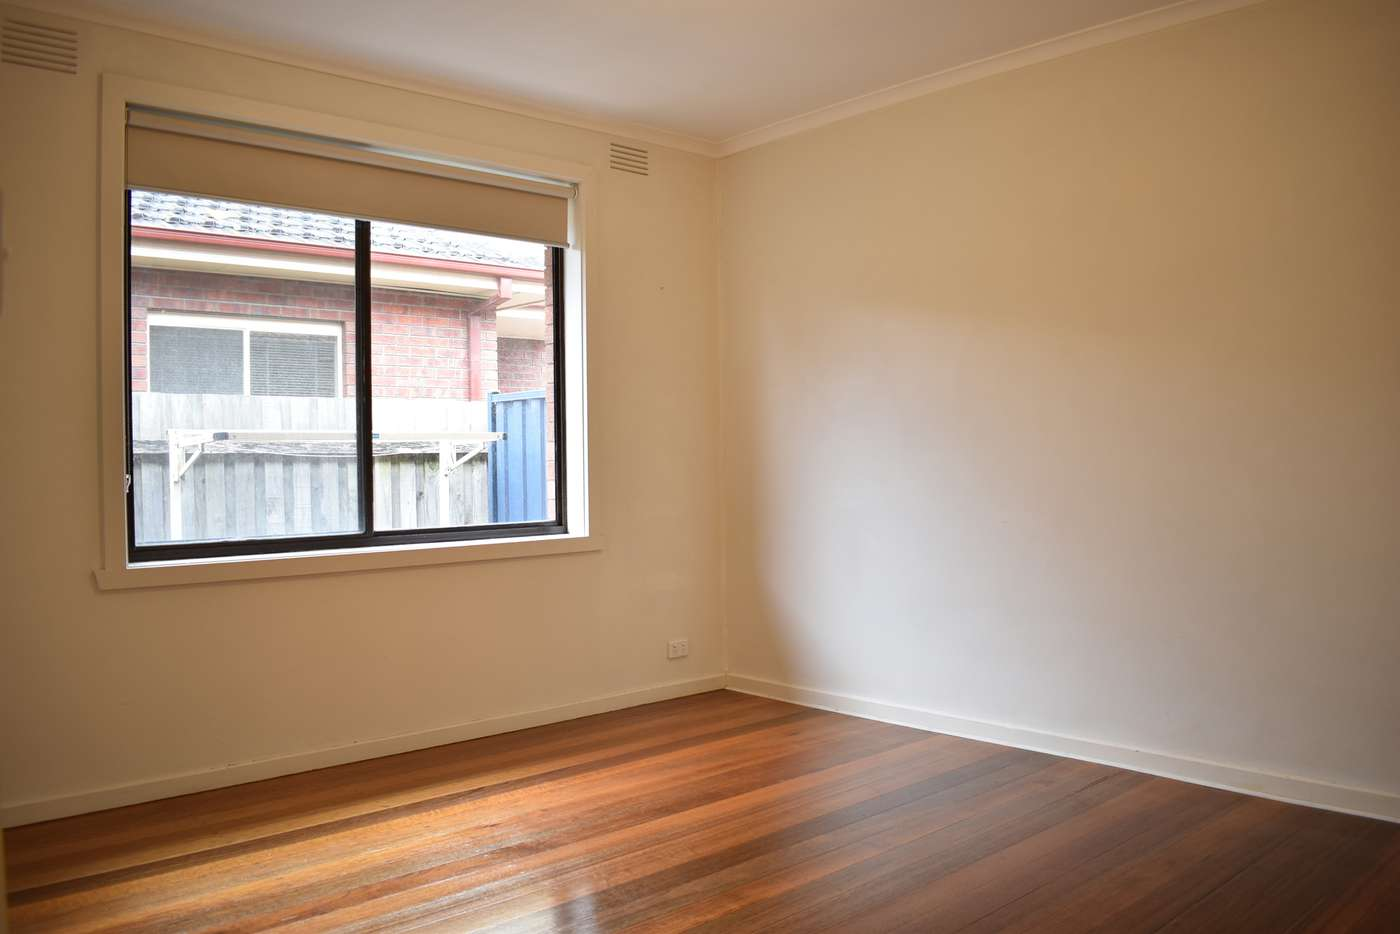 Sixth view of Homely unit listing, 4/105 Pearson Street, Brunswick VIC 3056